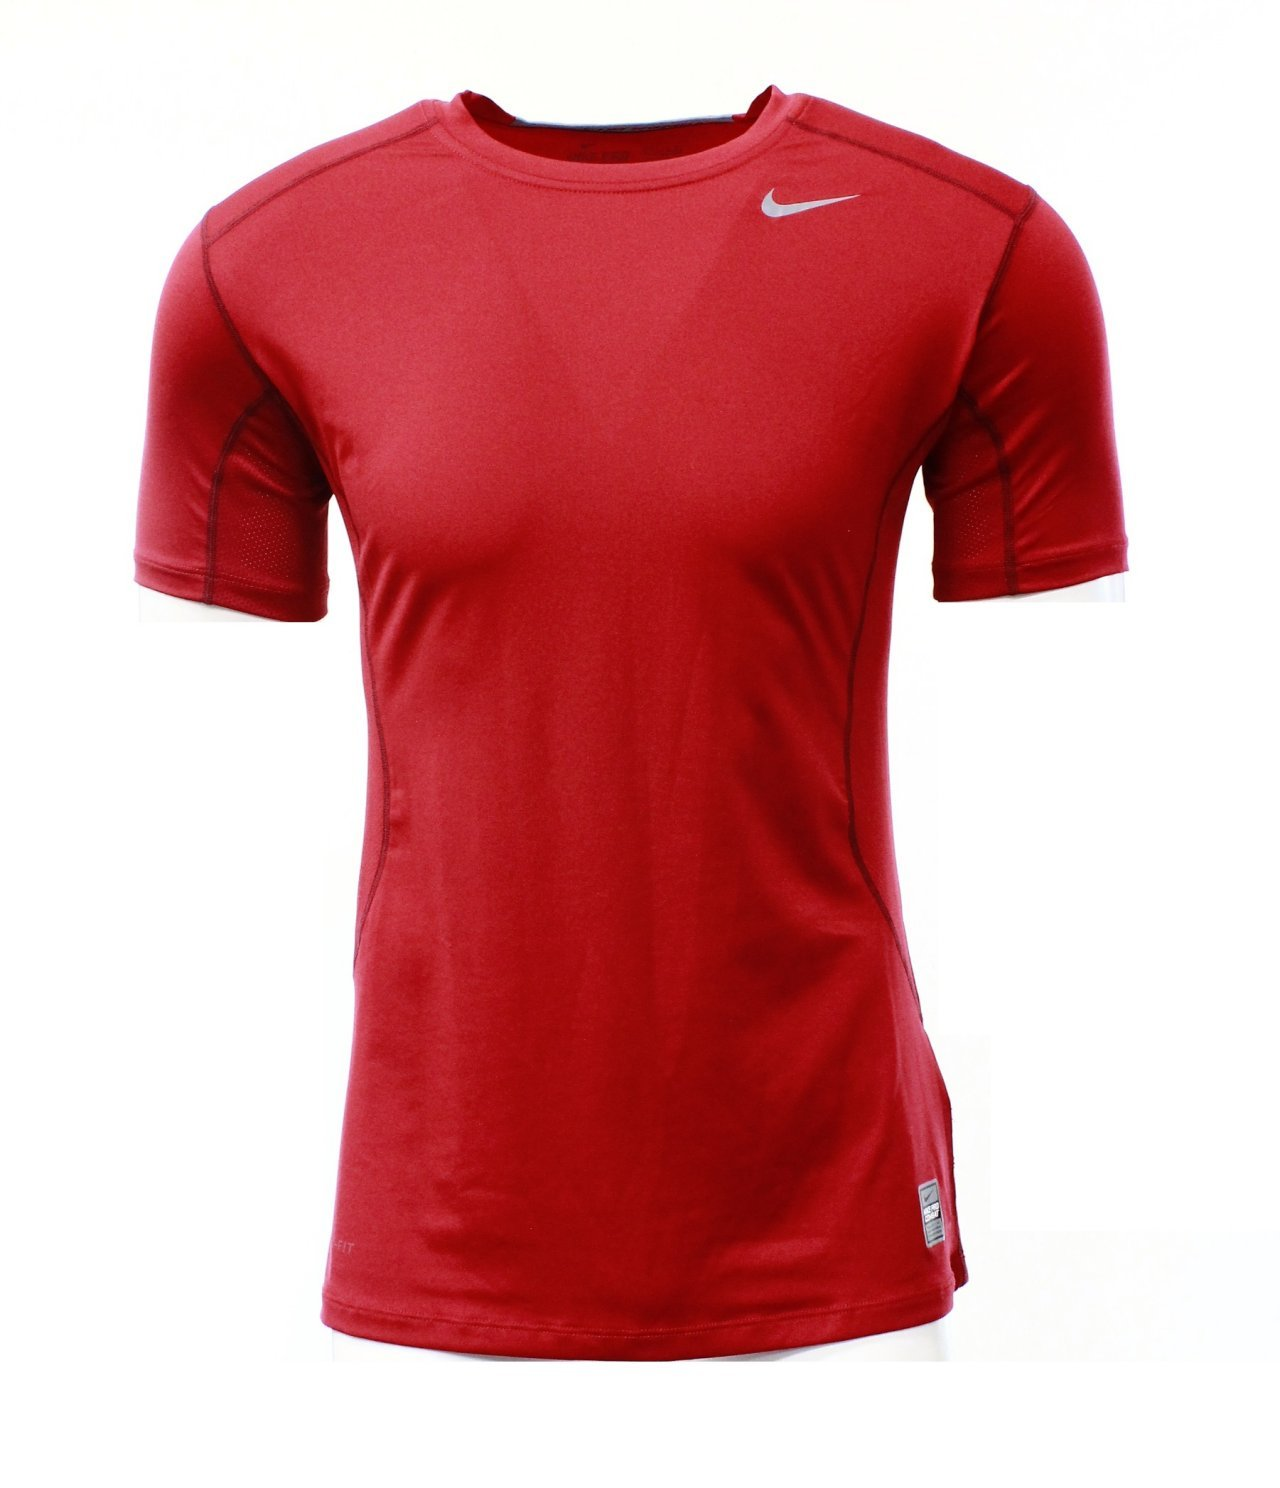 Nike Mens Core Fitted Short Sleeve Top 2.0 - Medium - Gym Red 449787